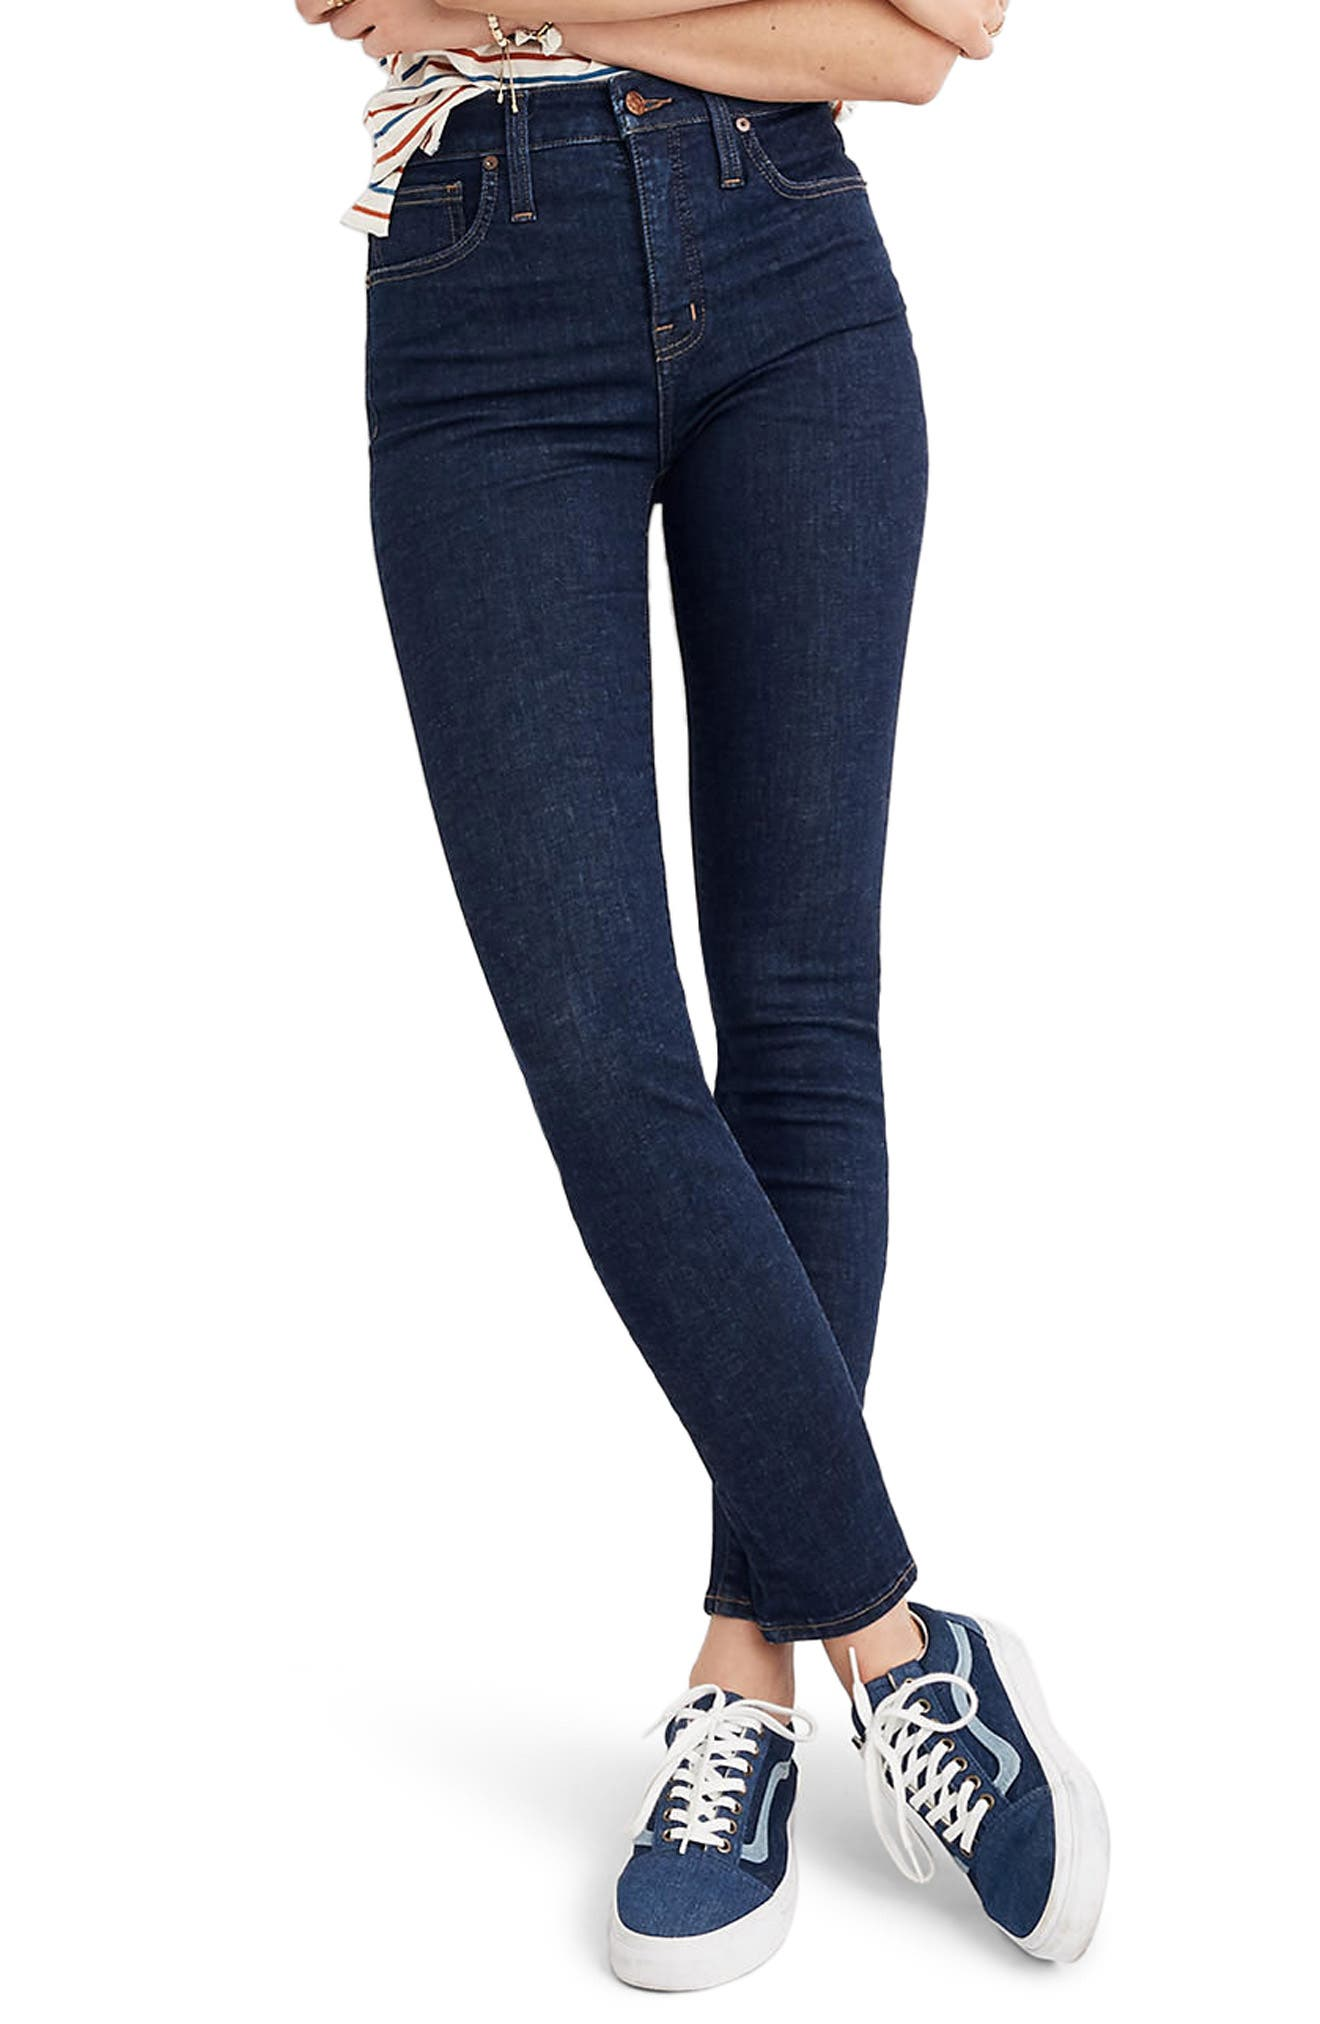 Alternate Image 1 Selected - Madewell Curvy High Waist Skinny Jeans (Lucille)